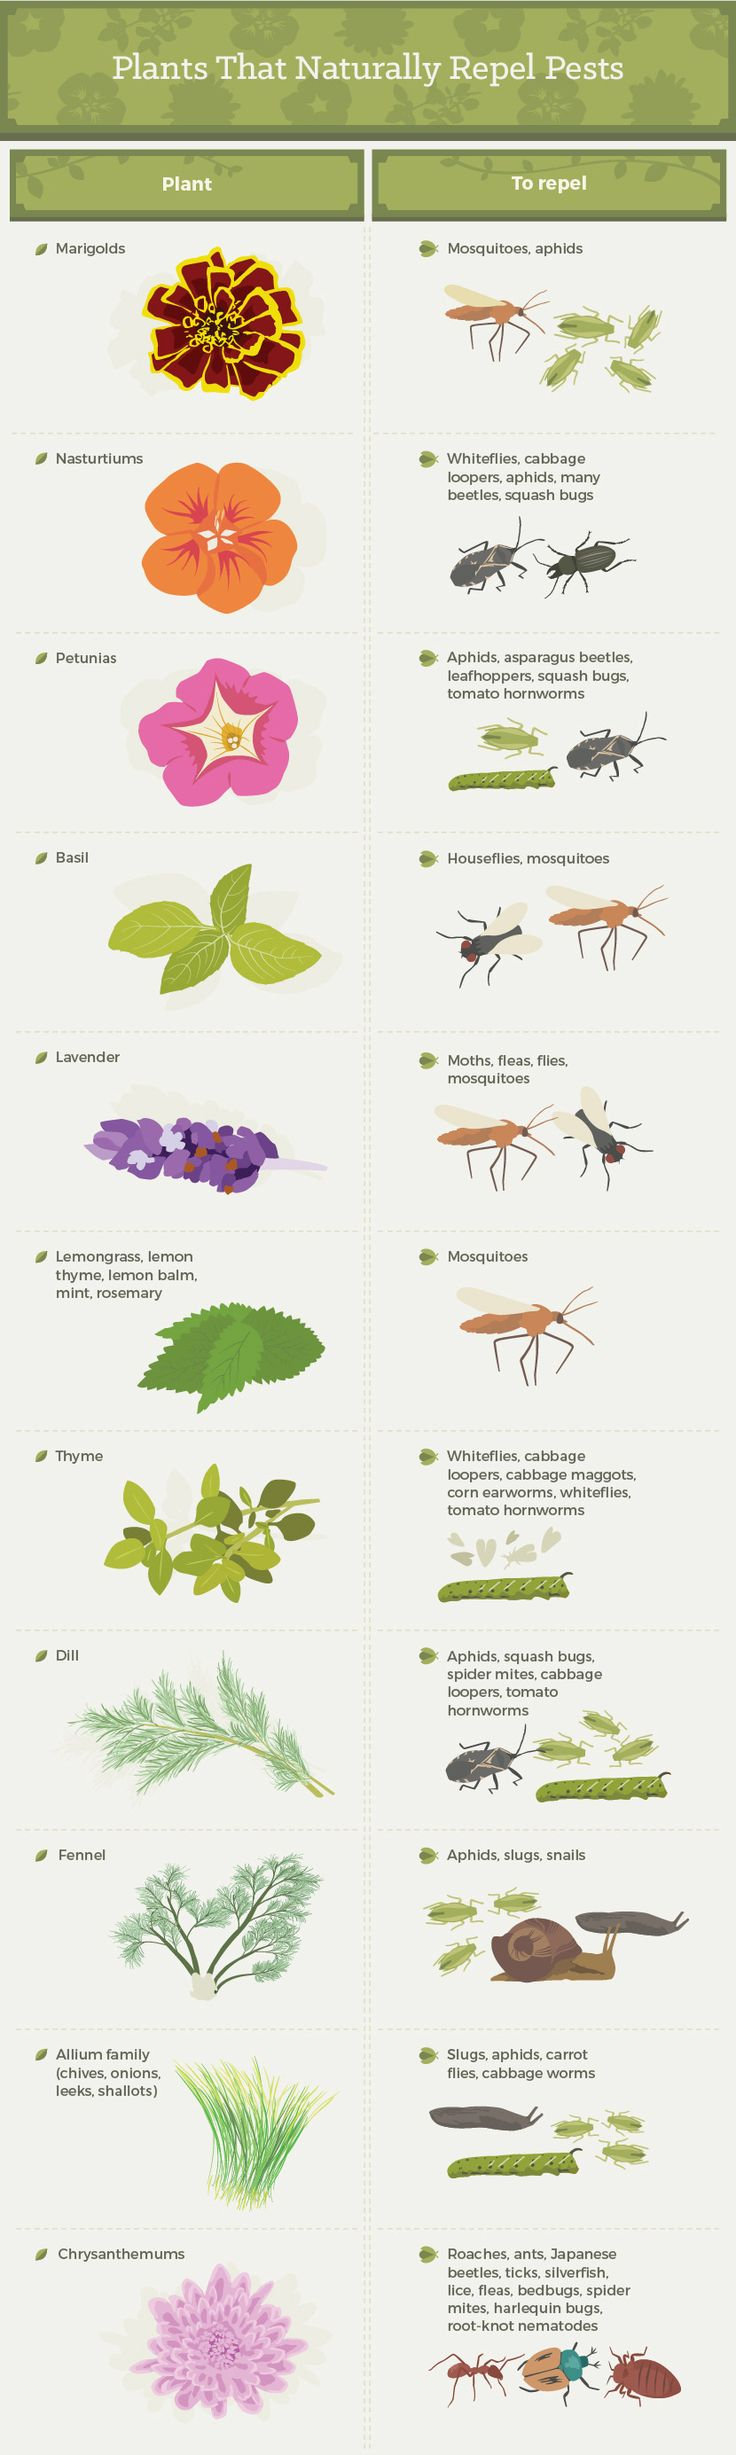 Plants that Naturally Repel Pests